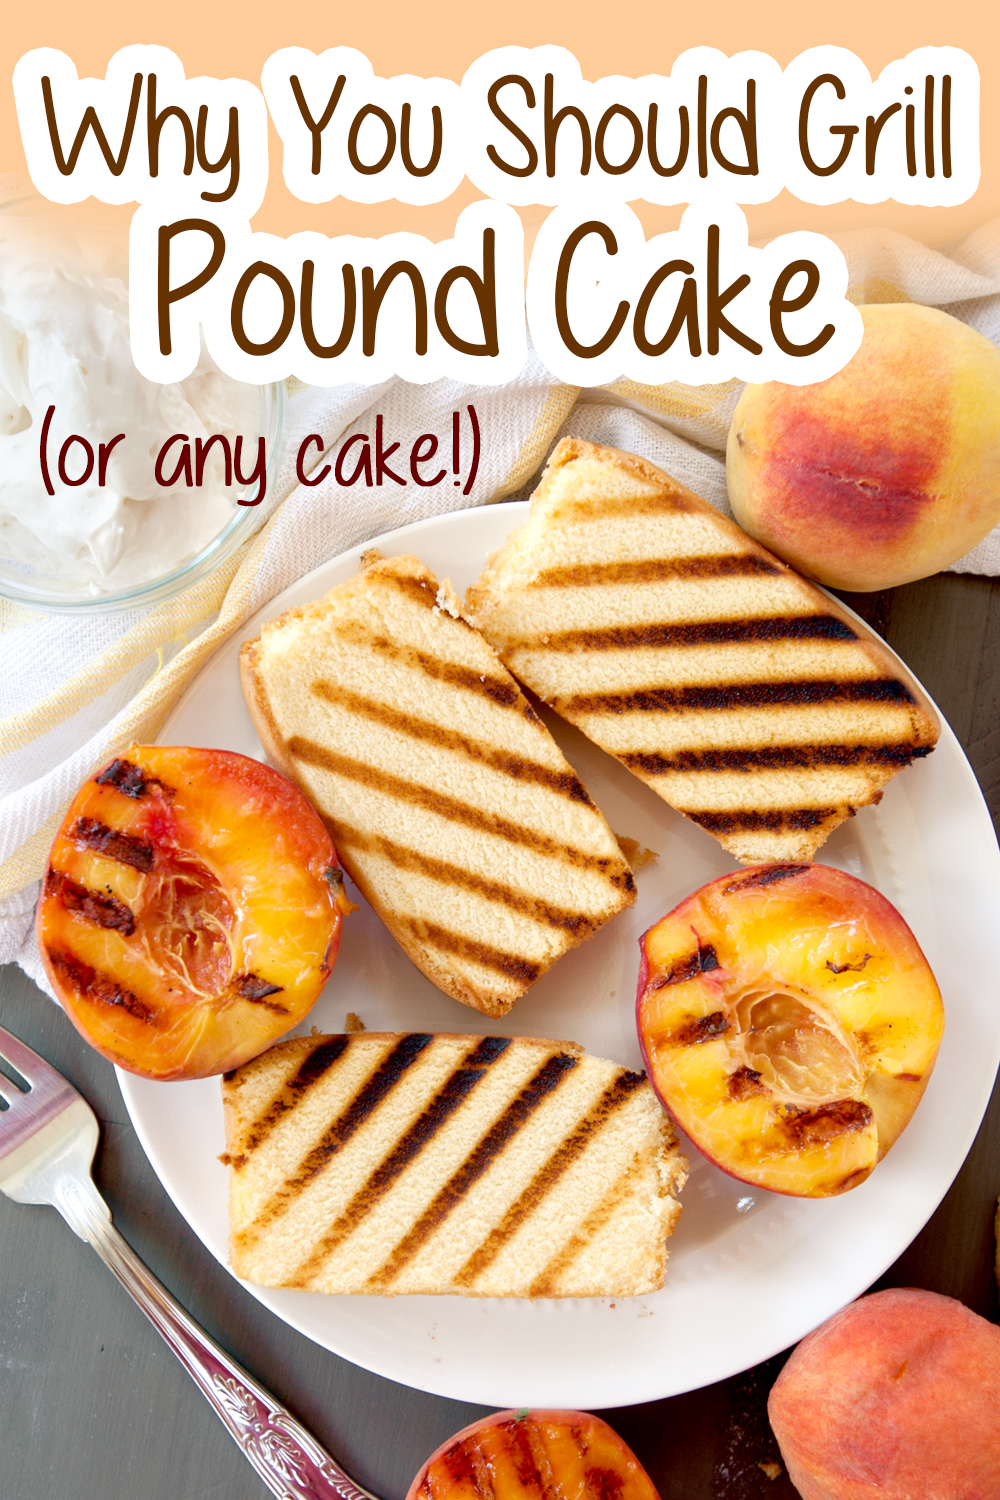 grilled pound cake pinterest image with text